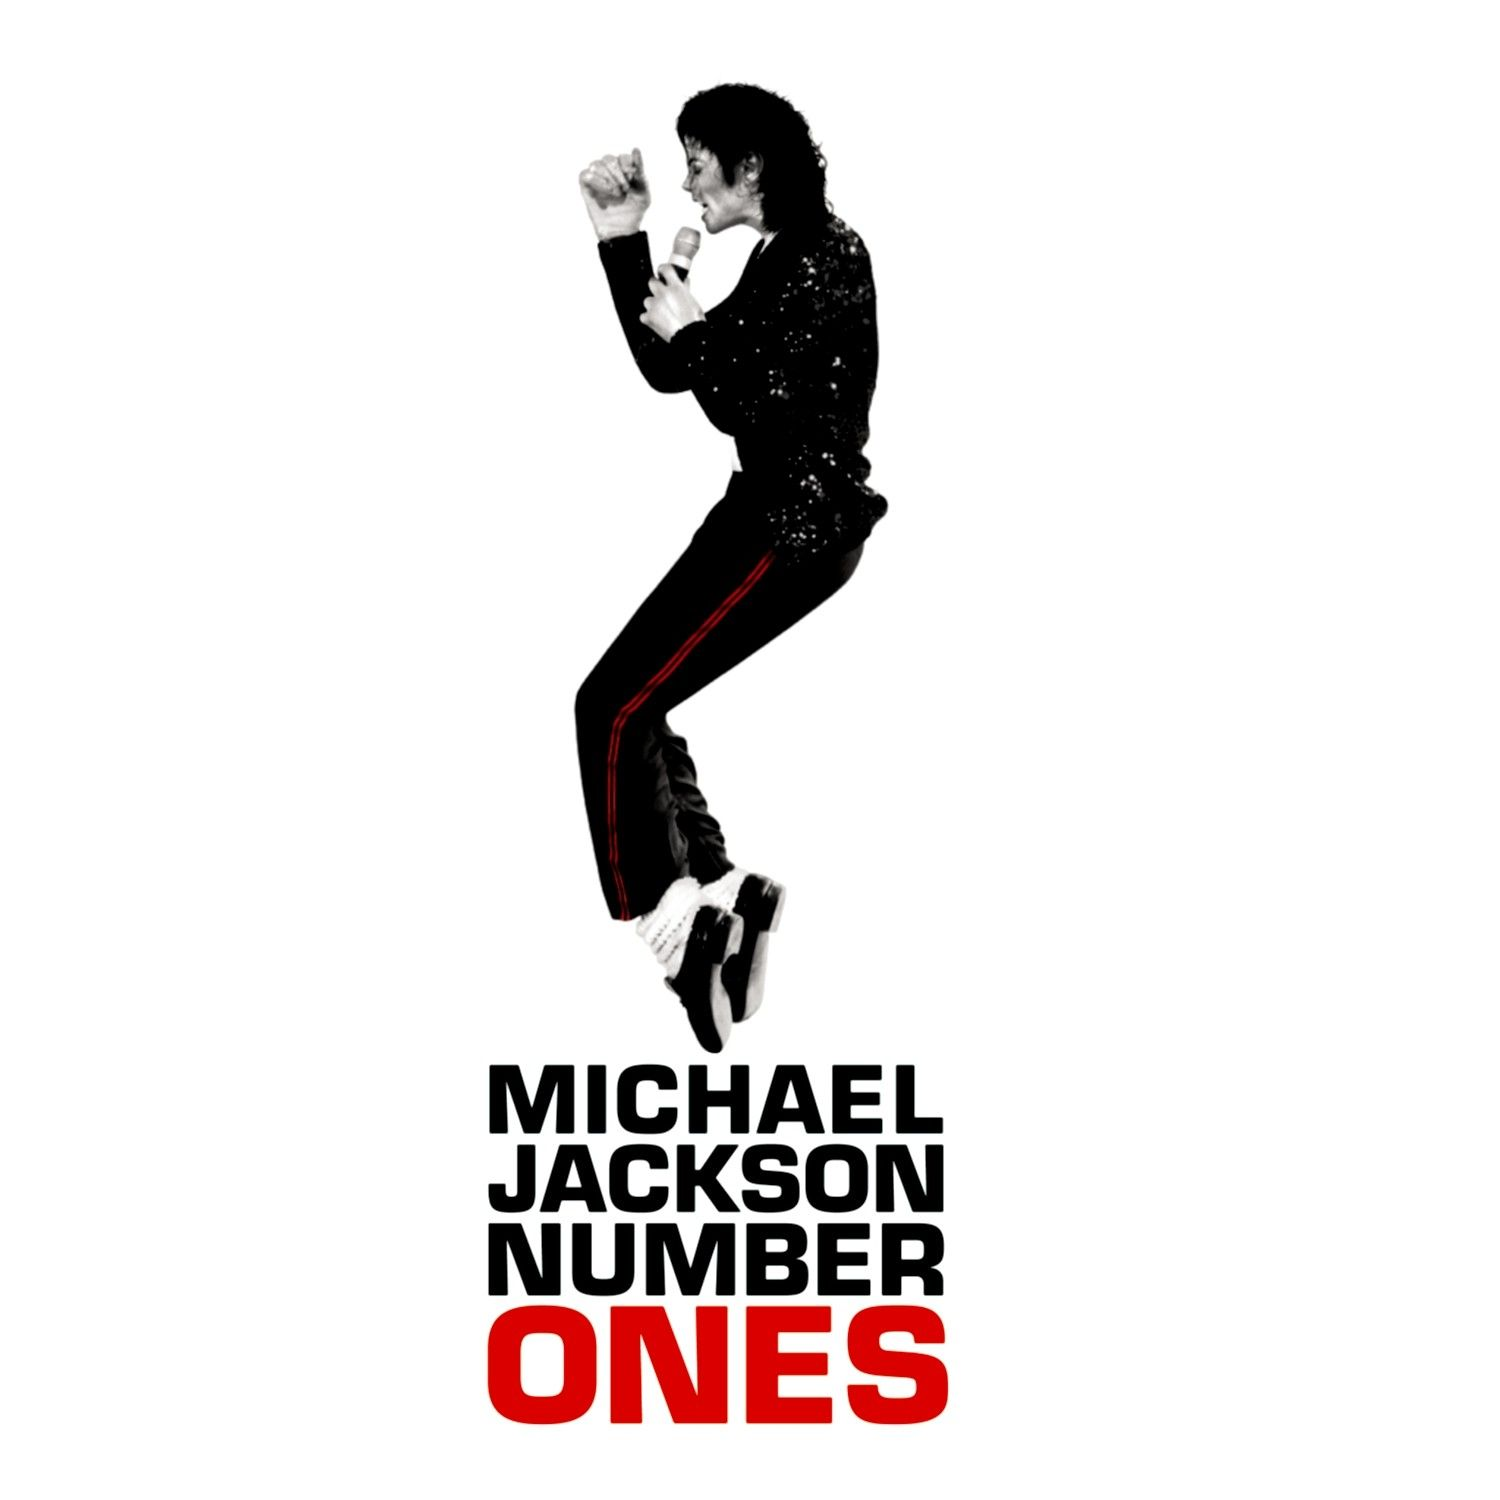 Michael Jackson - Number Ones album cover